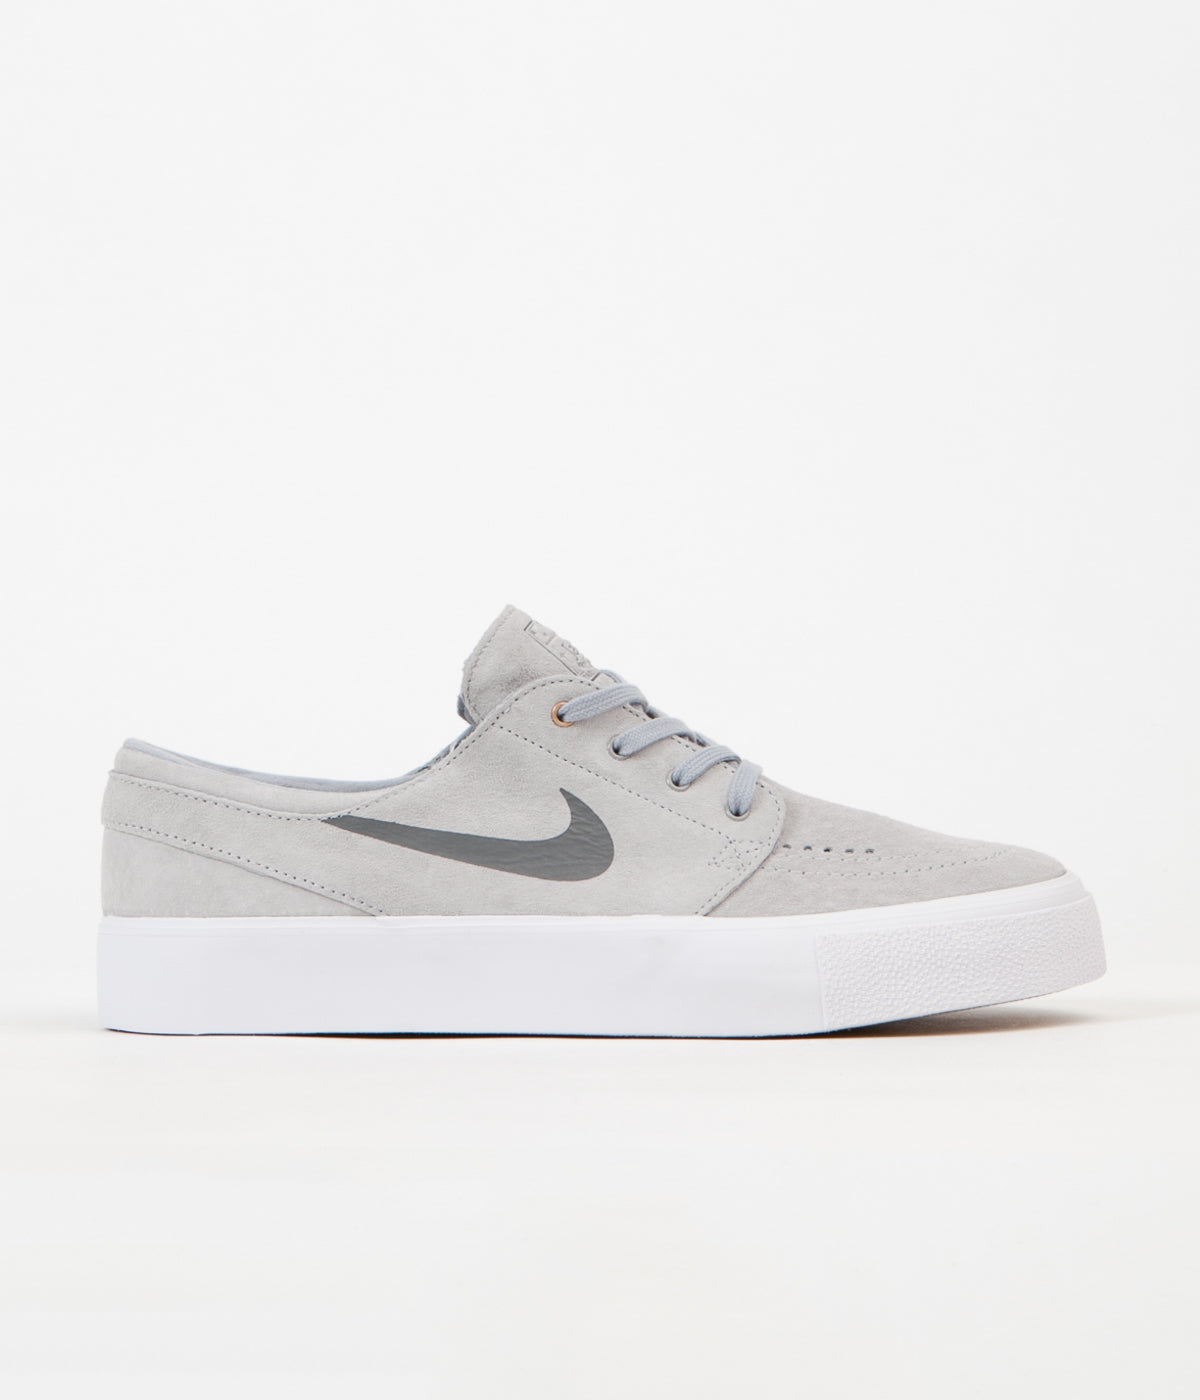 Nike SB Stefan Janoski HT Shoes - Wolf Grey   Dark Grey - Metallic Gold -  White defbd1413